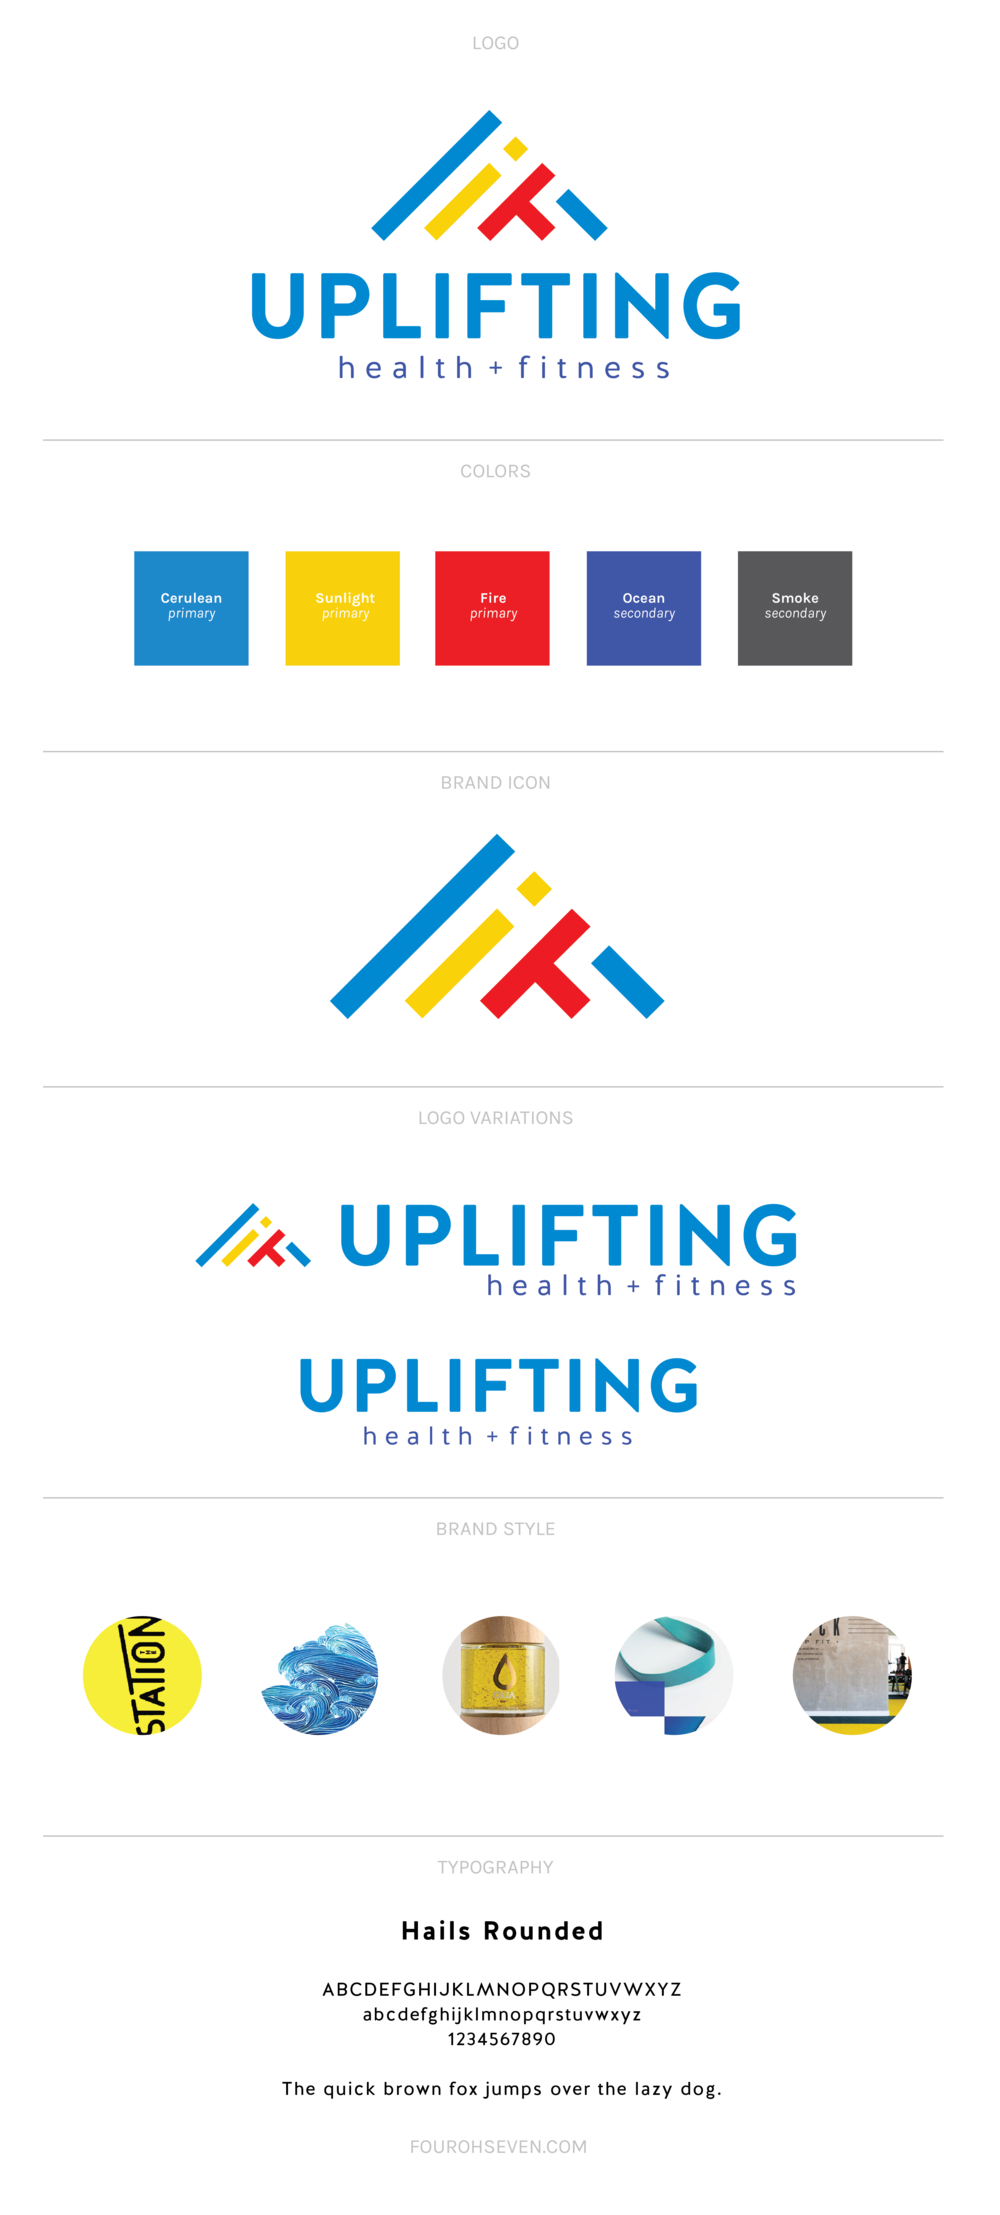 Uplifting Health + Fitness Branding